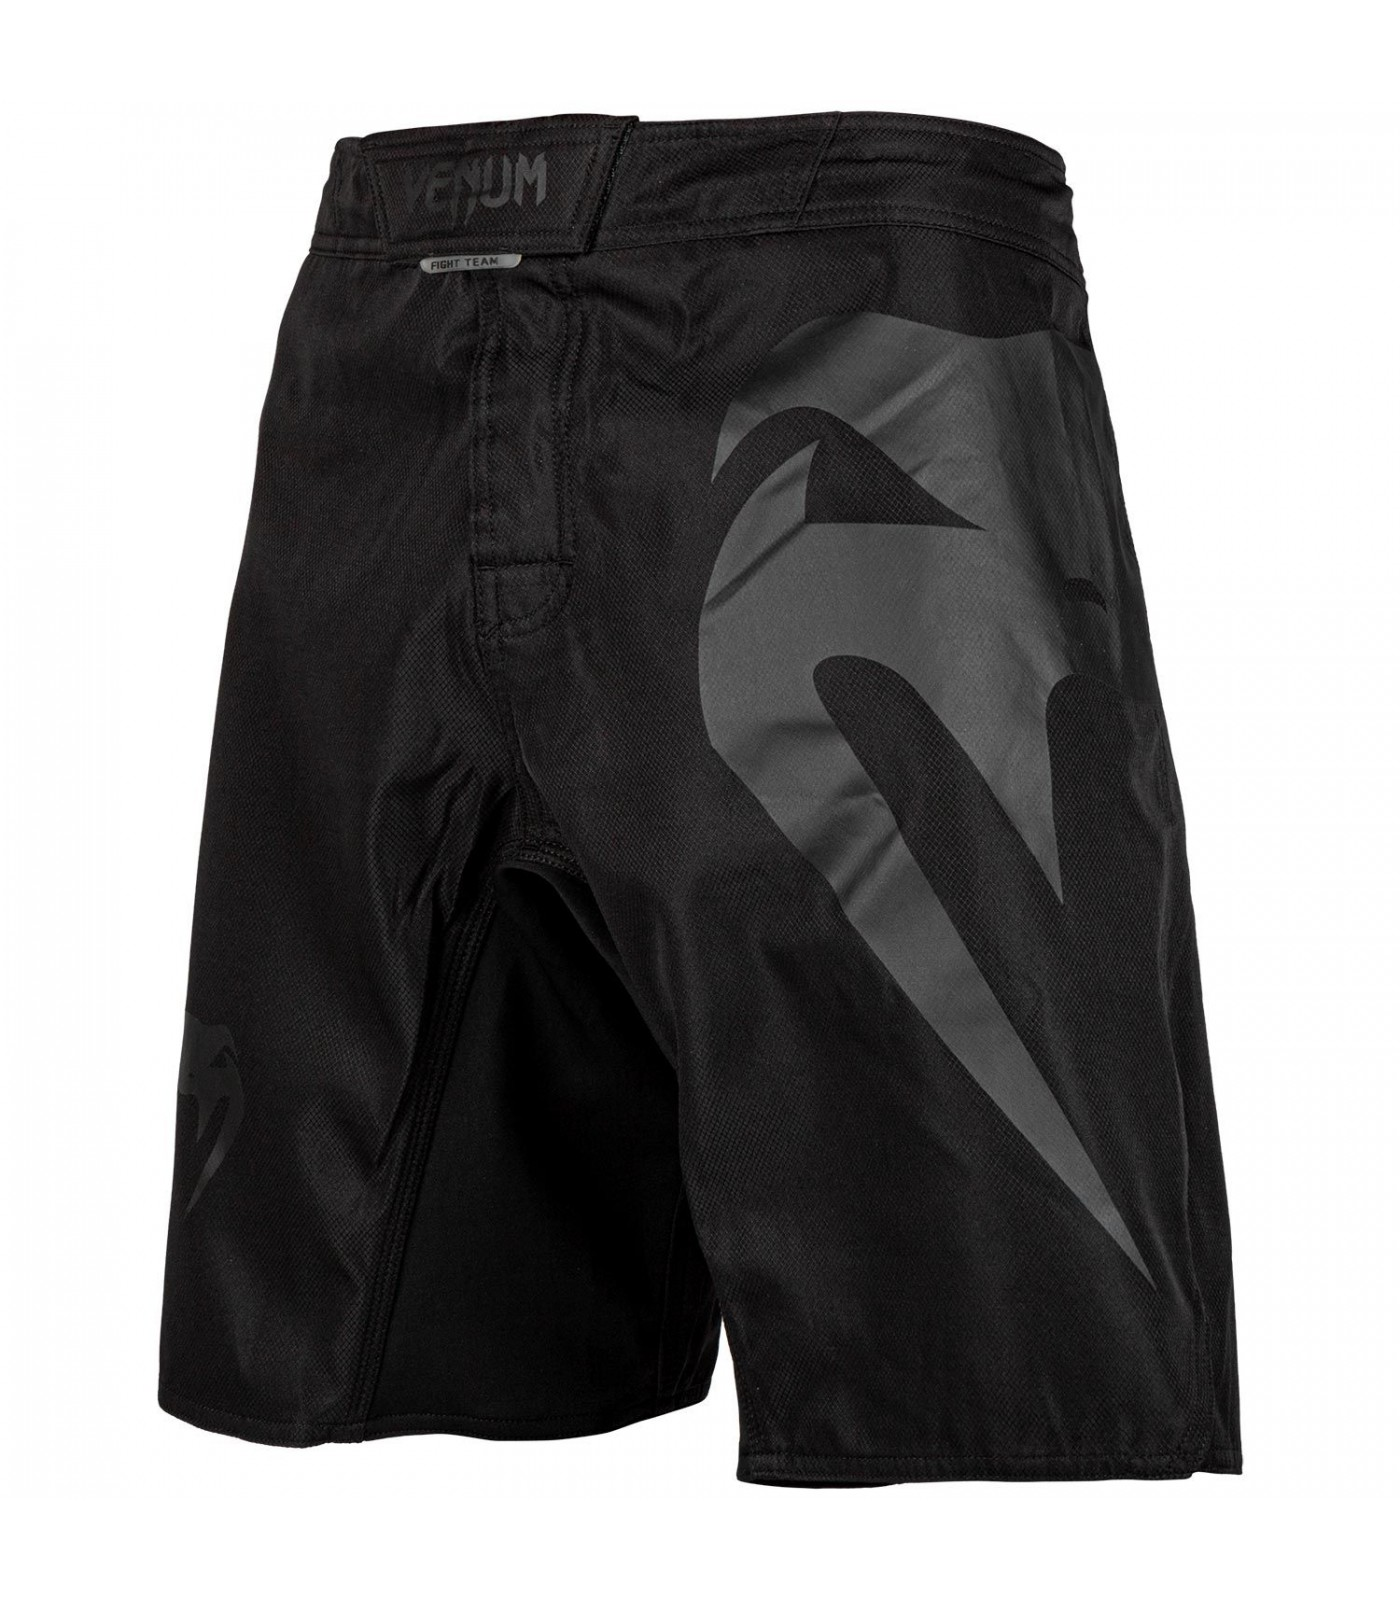 Шорти - Venum Light 3.0 Fightshorts - Black/Black​